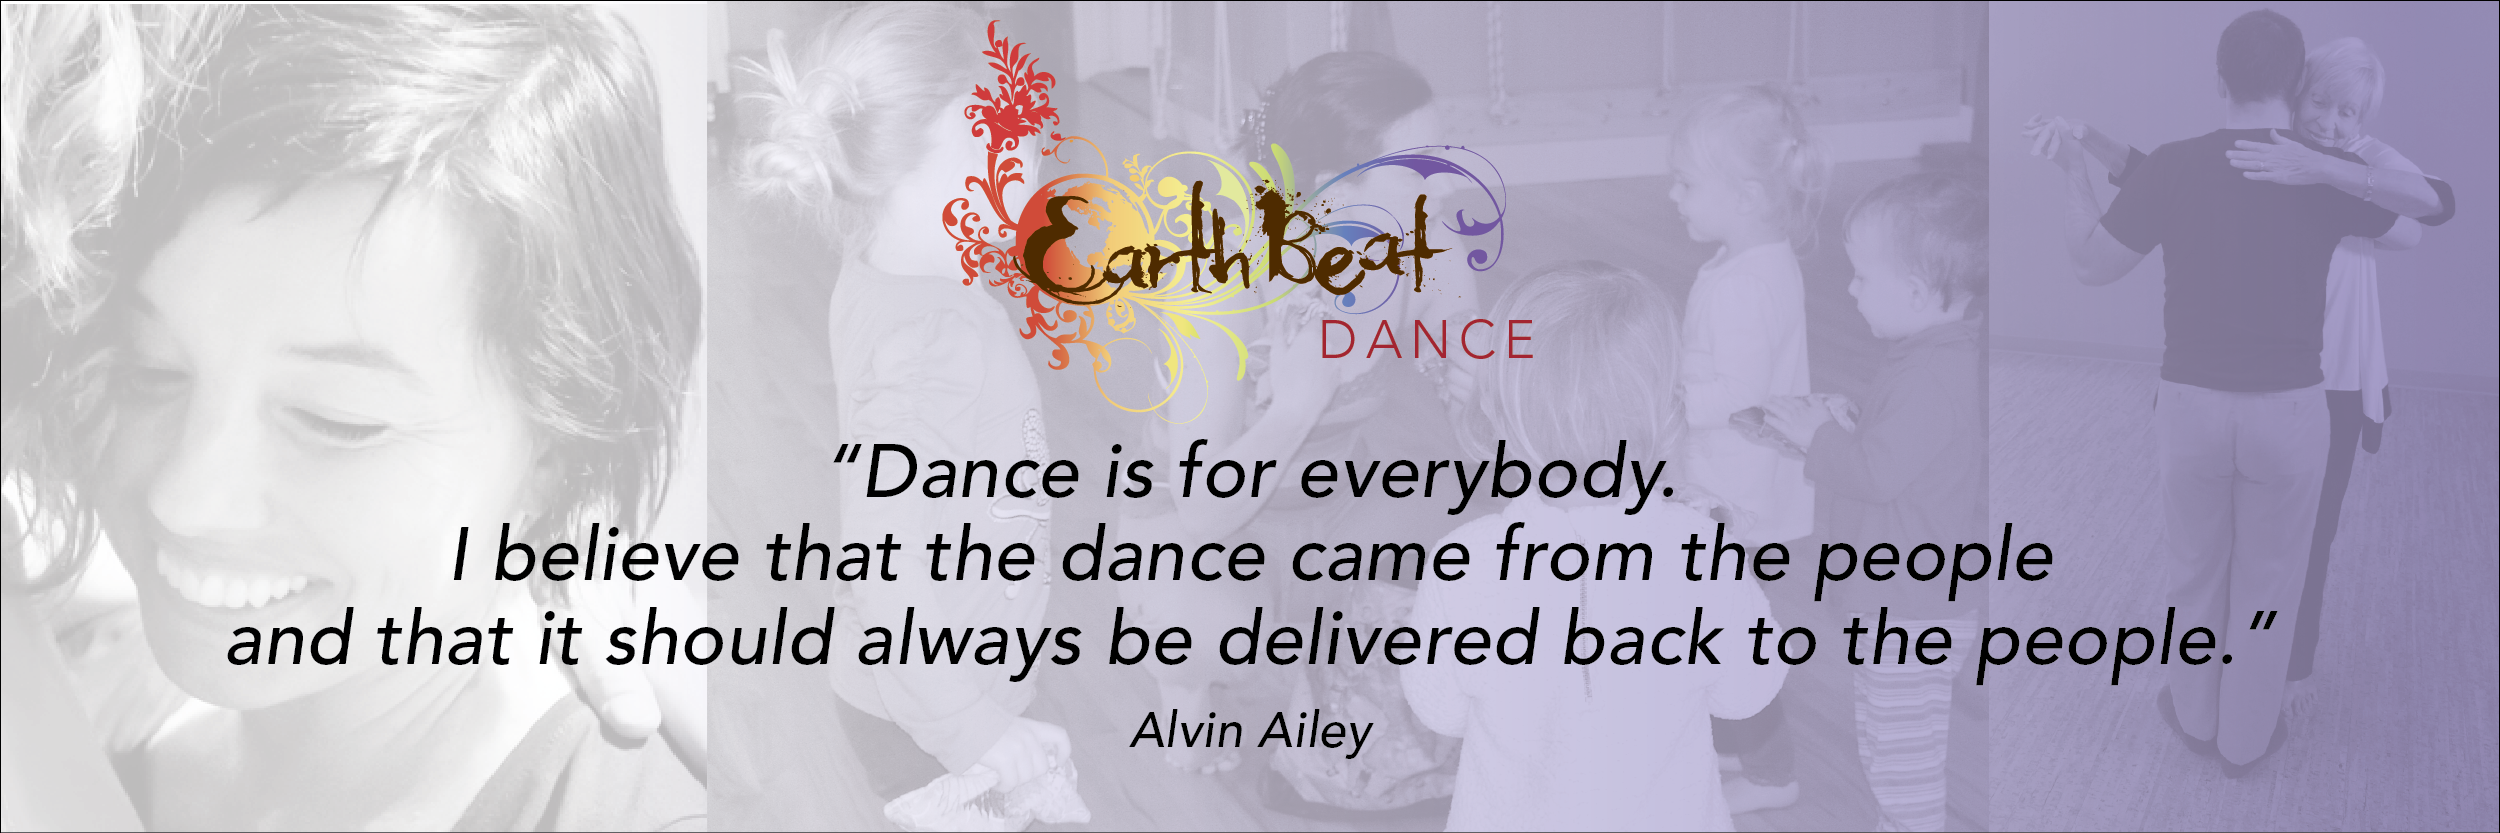 EarthBeat Dance